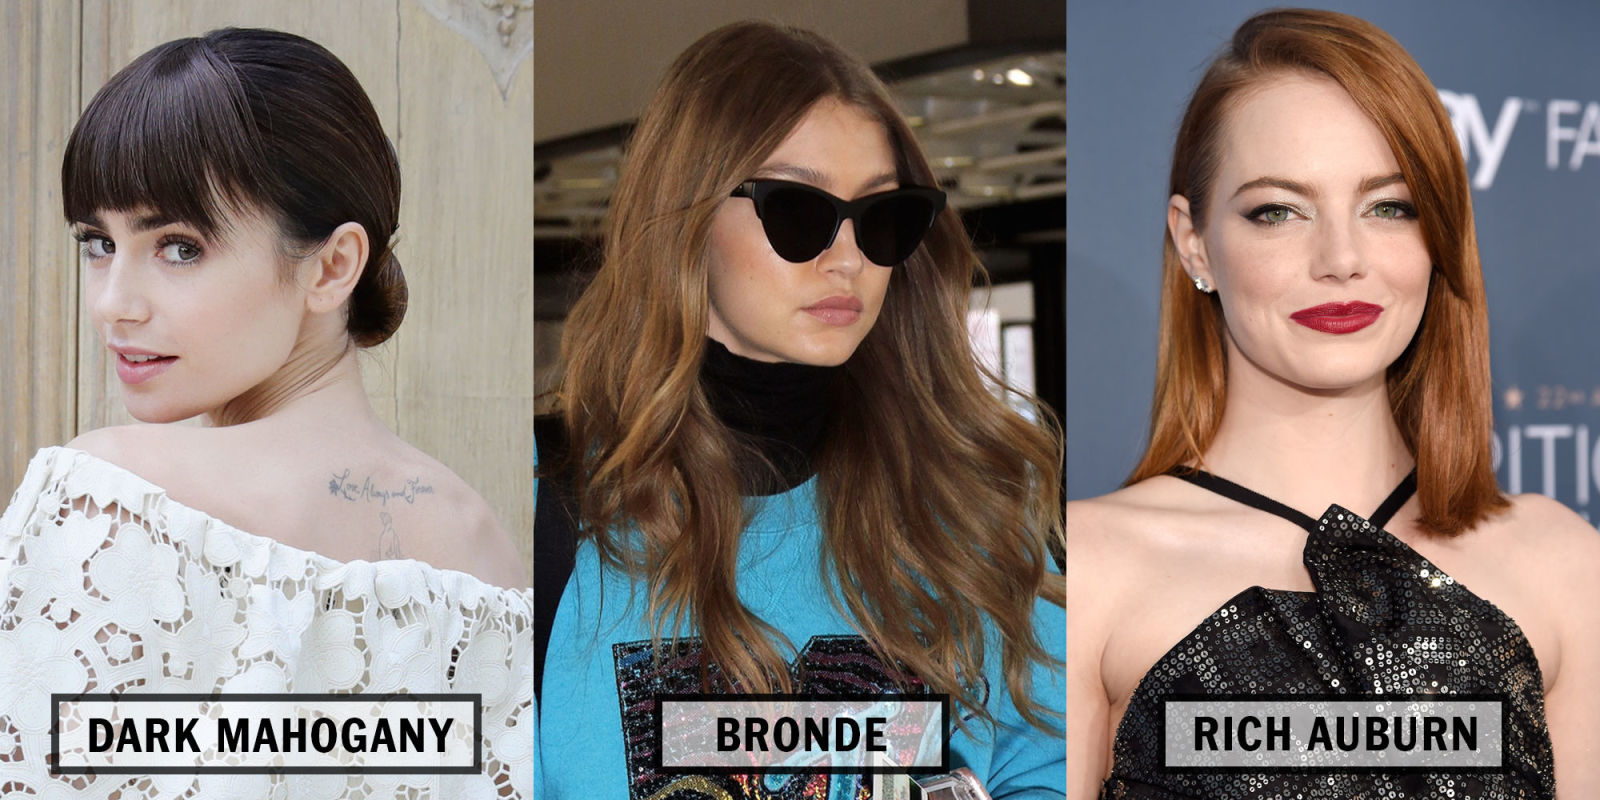 Brown hair color hair colors 2017 trends and ideas for your hair - Brown Hair Color Hair Colors 2017 Trends And Ideas For Your Hair 8